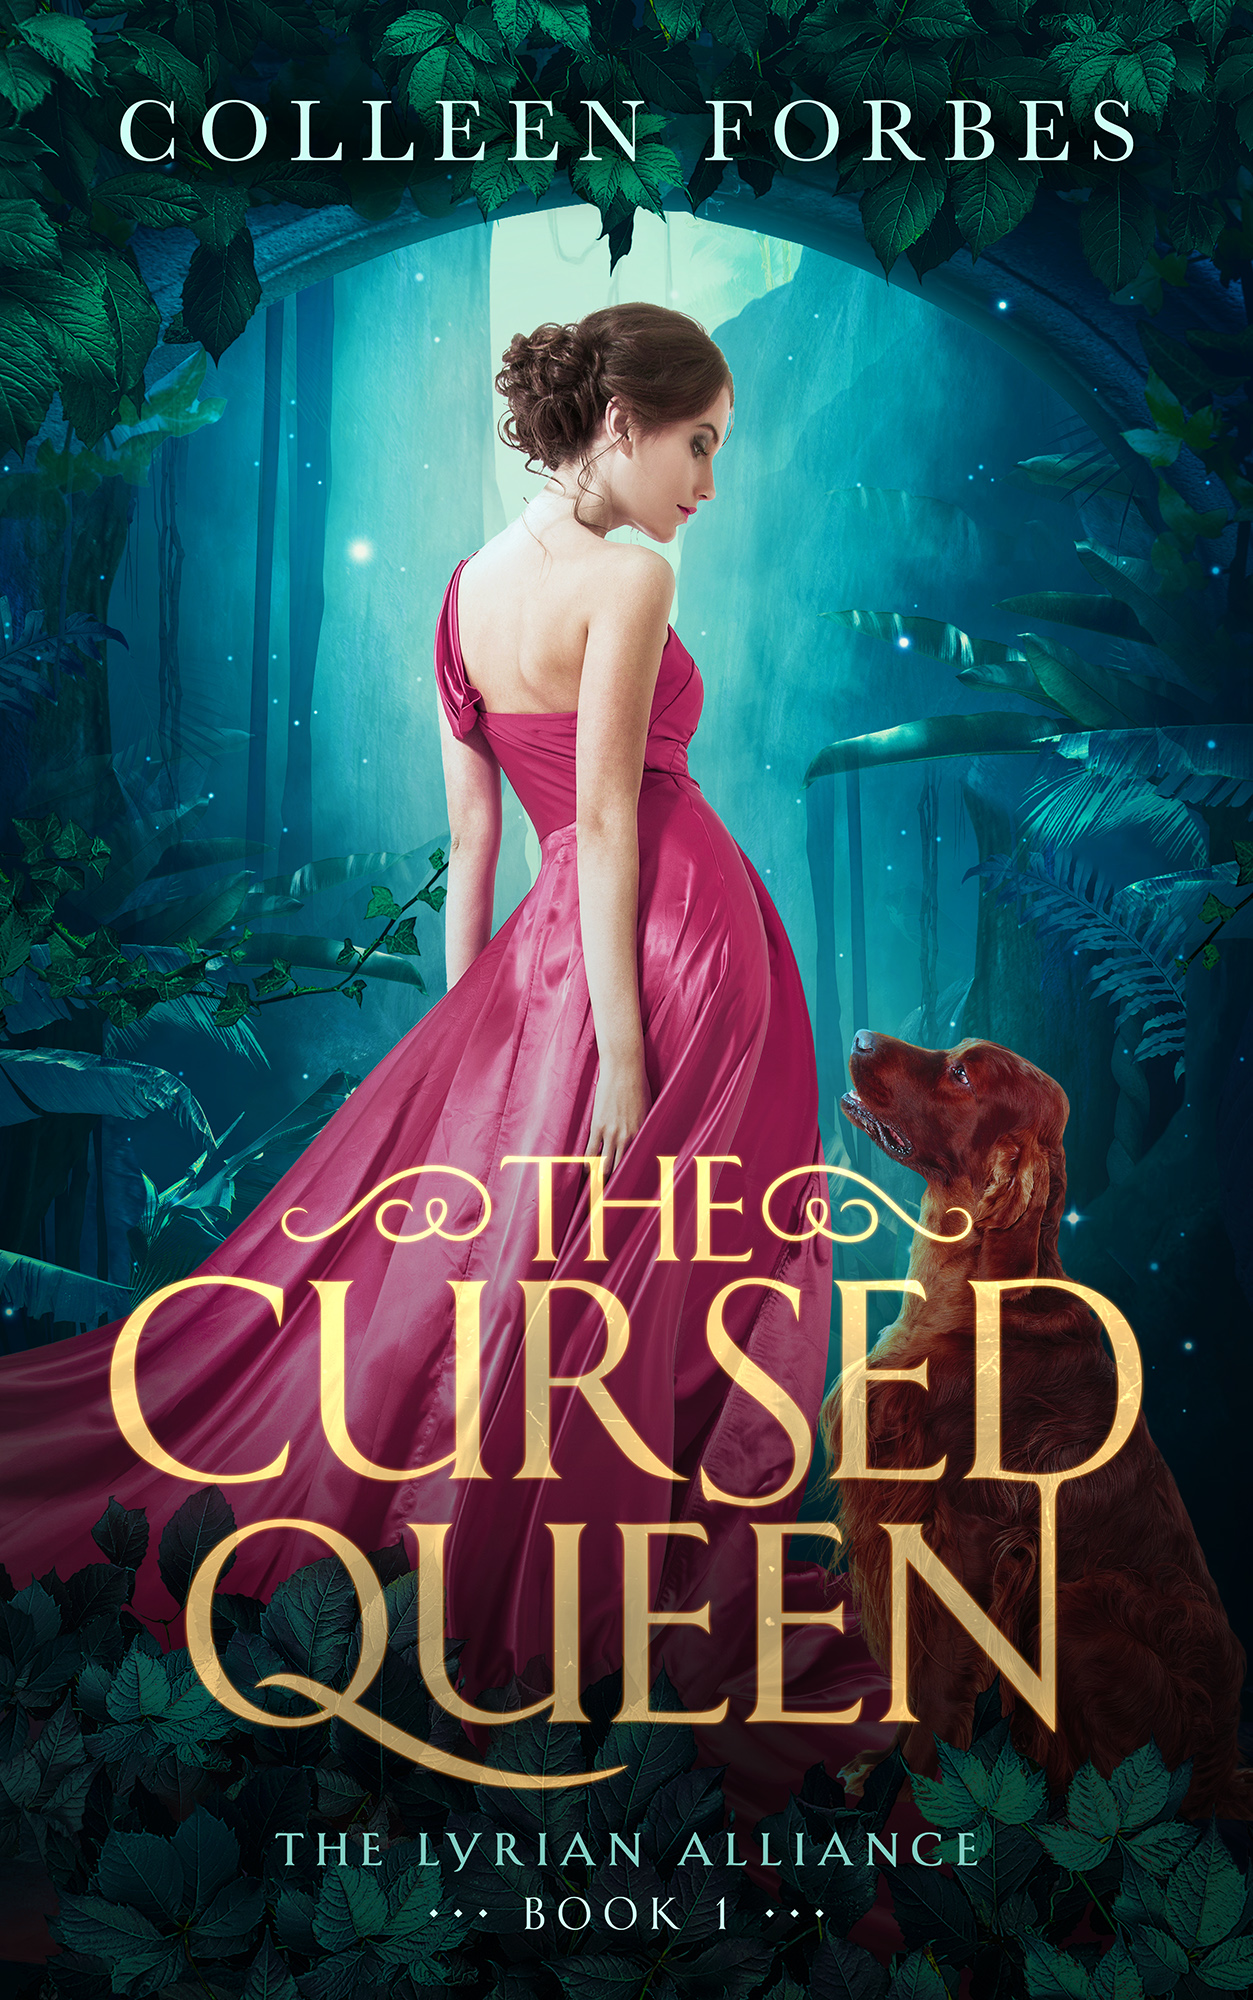 The Cursed Queen (The Lyrian Alliance, #1)